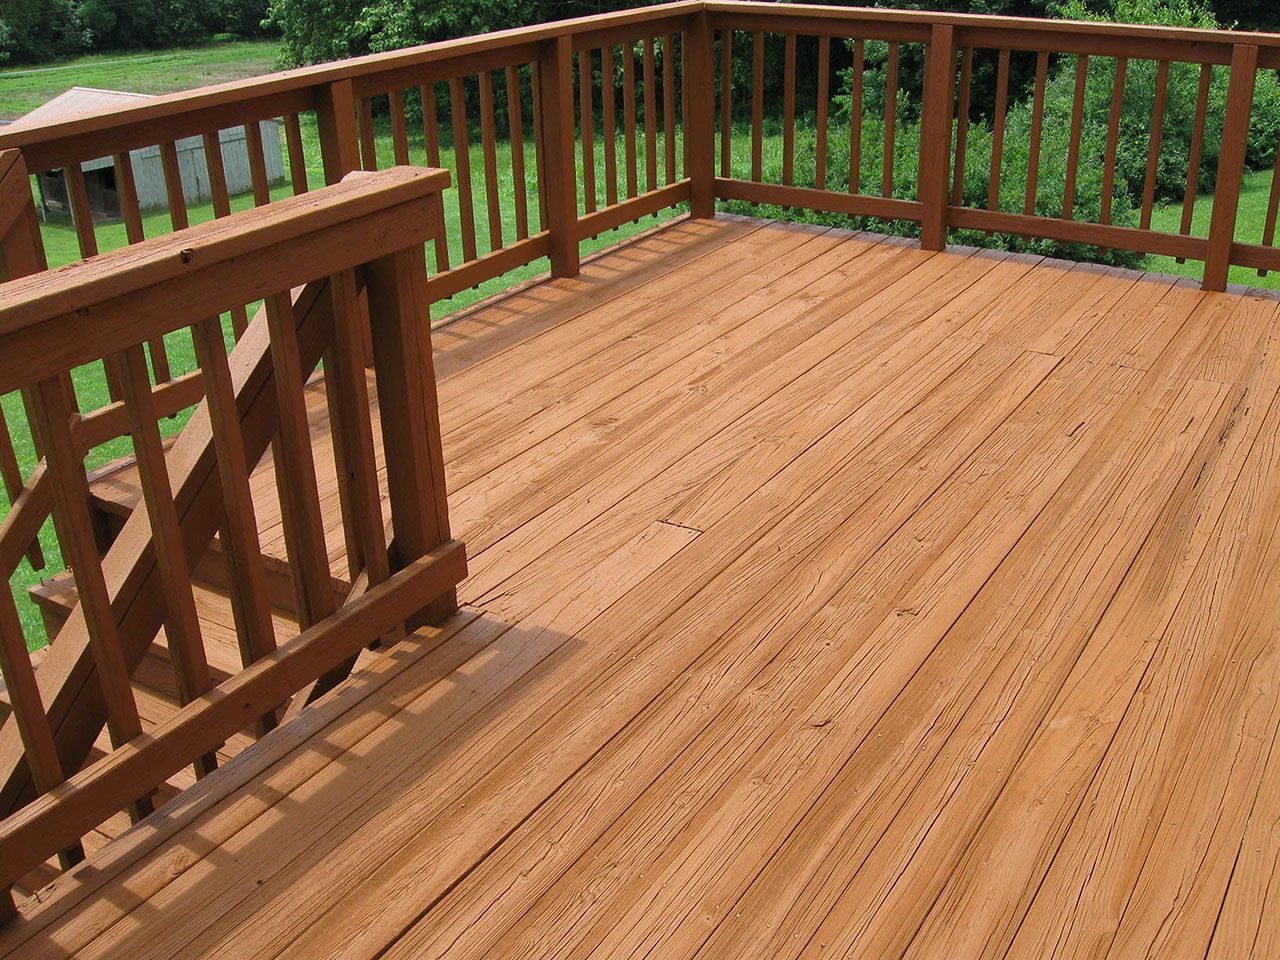 Behr Solid Chestnut Staining Deck Deck Stain Colors Deck Paint